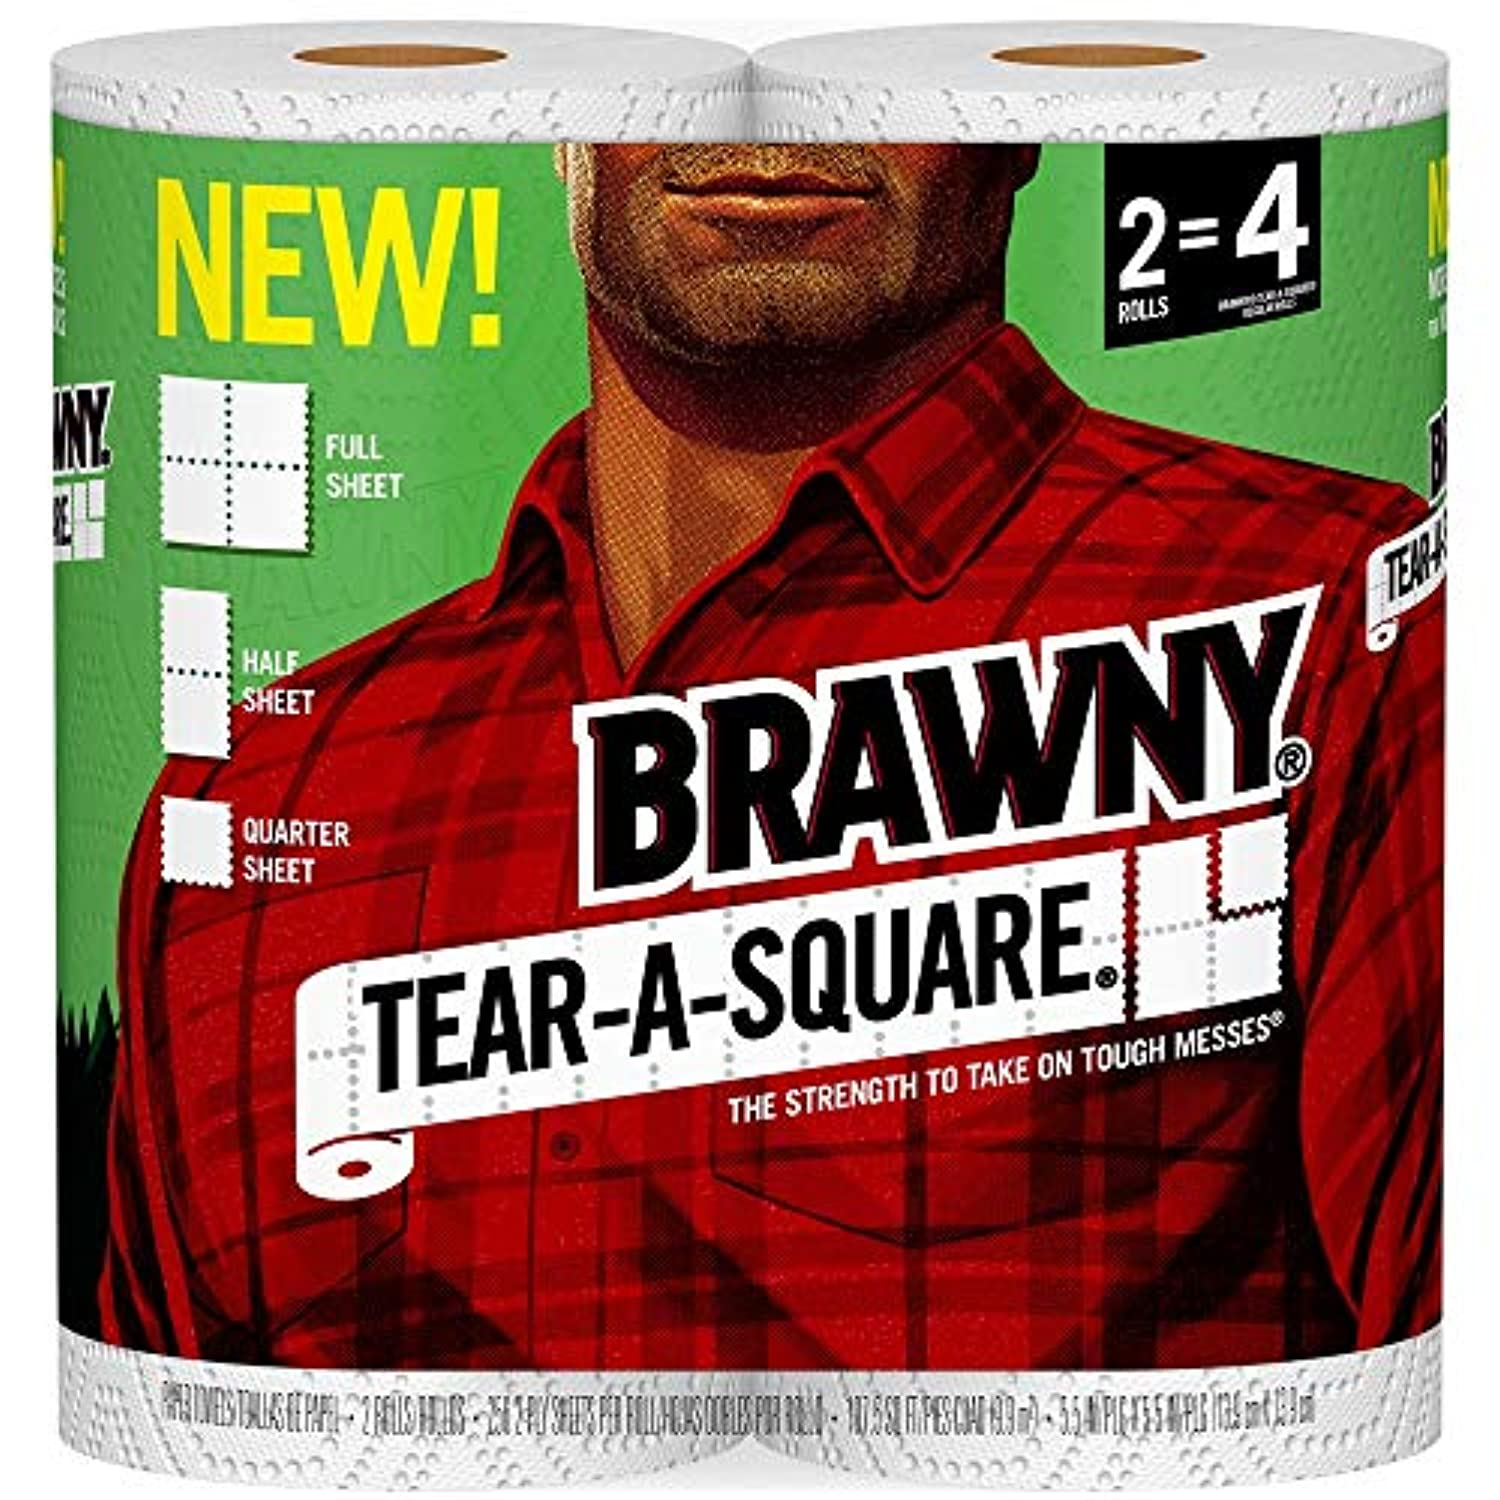 Brawny Tear-A-Square Paper Towels, 2 Rolls, 2 = 4 Regular Rolls, 3 Sheet Size Options (Packaging May Vary)